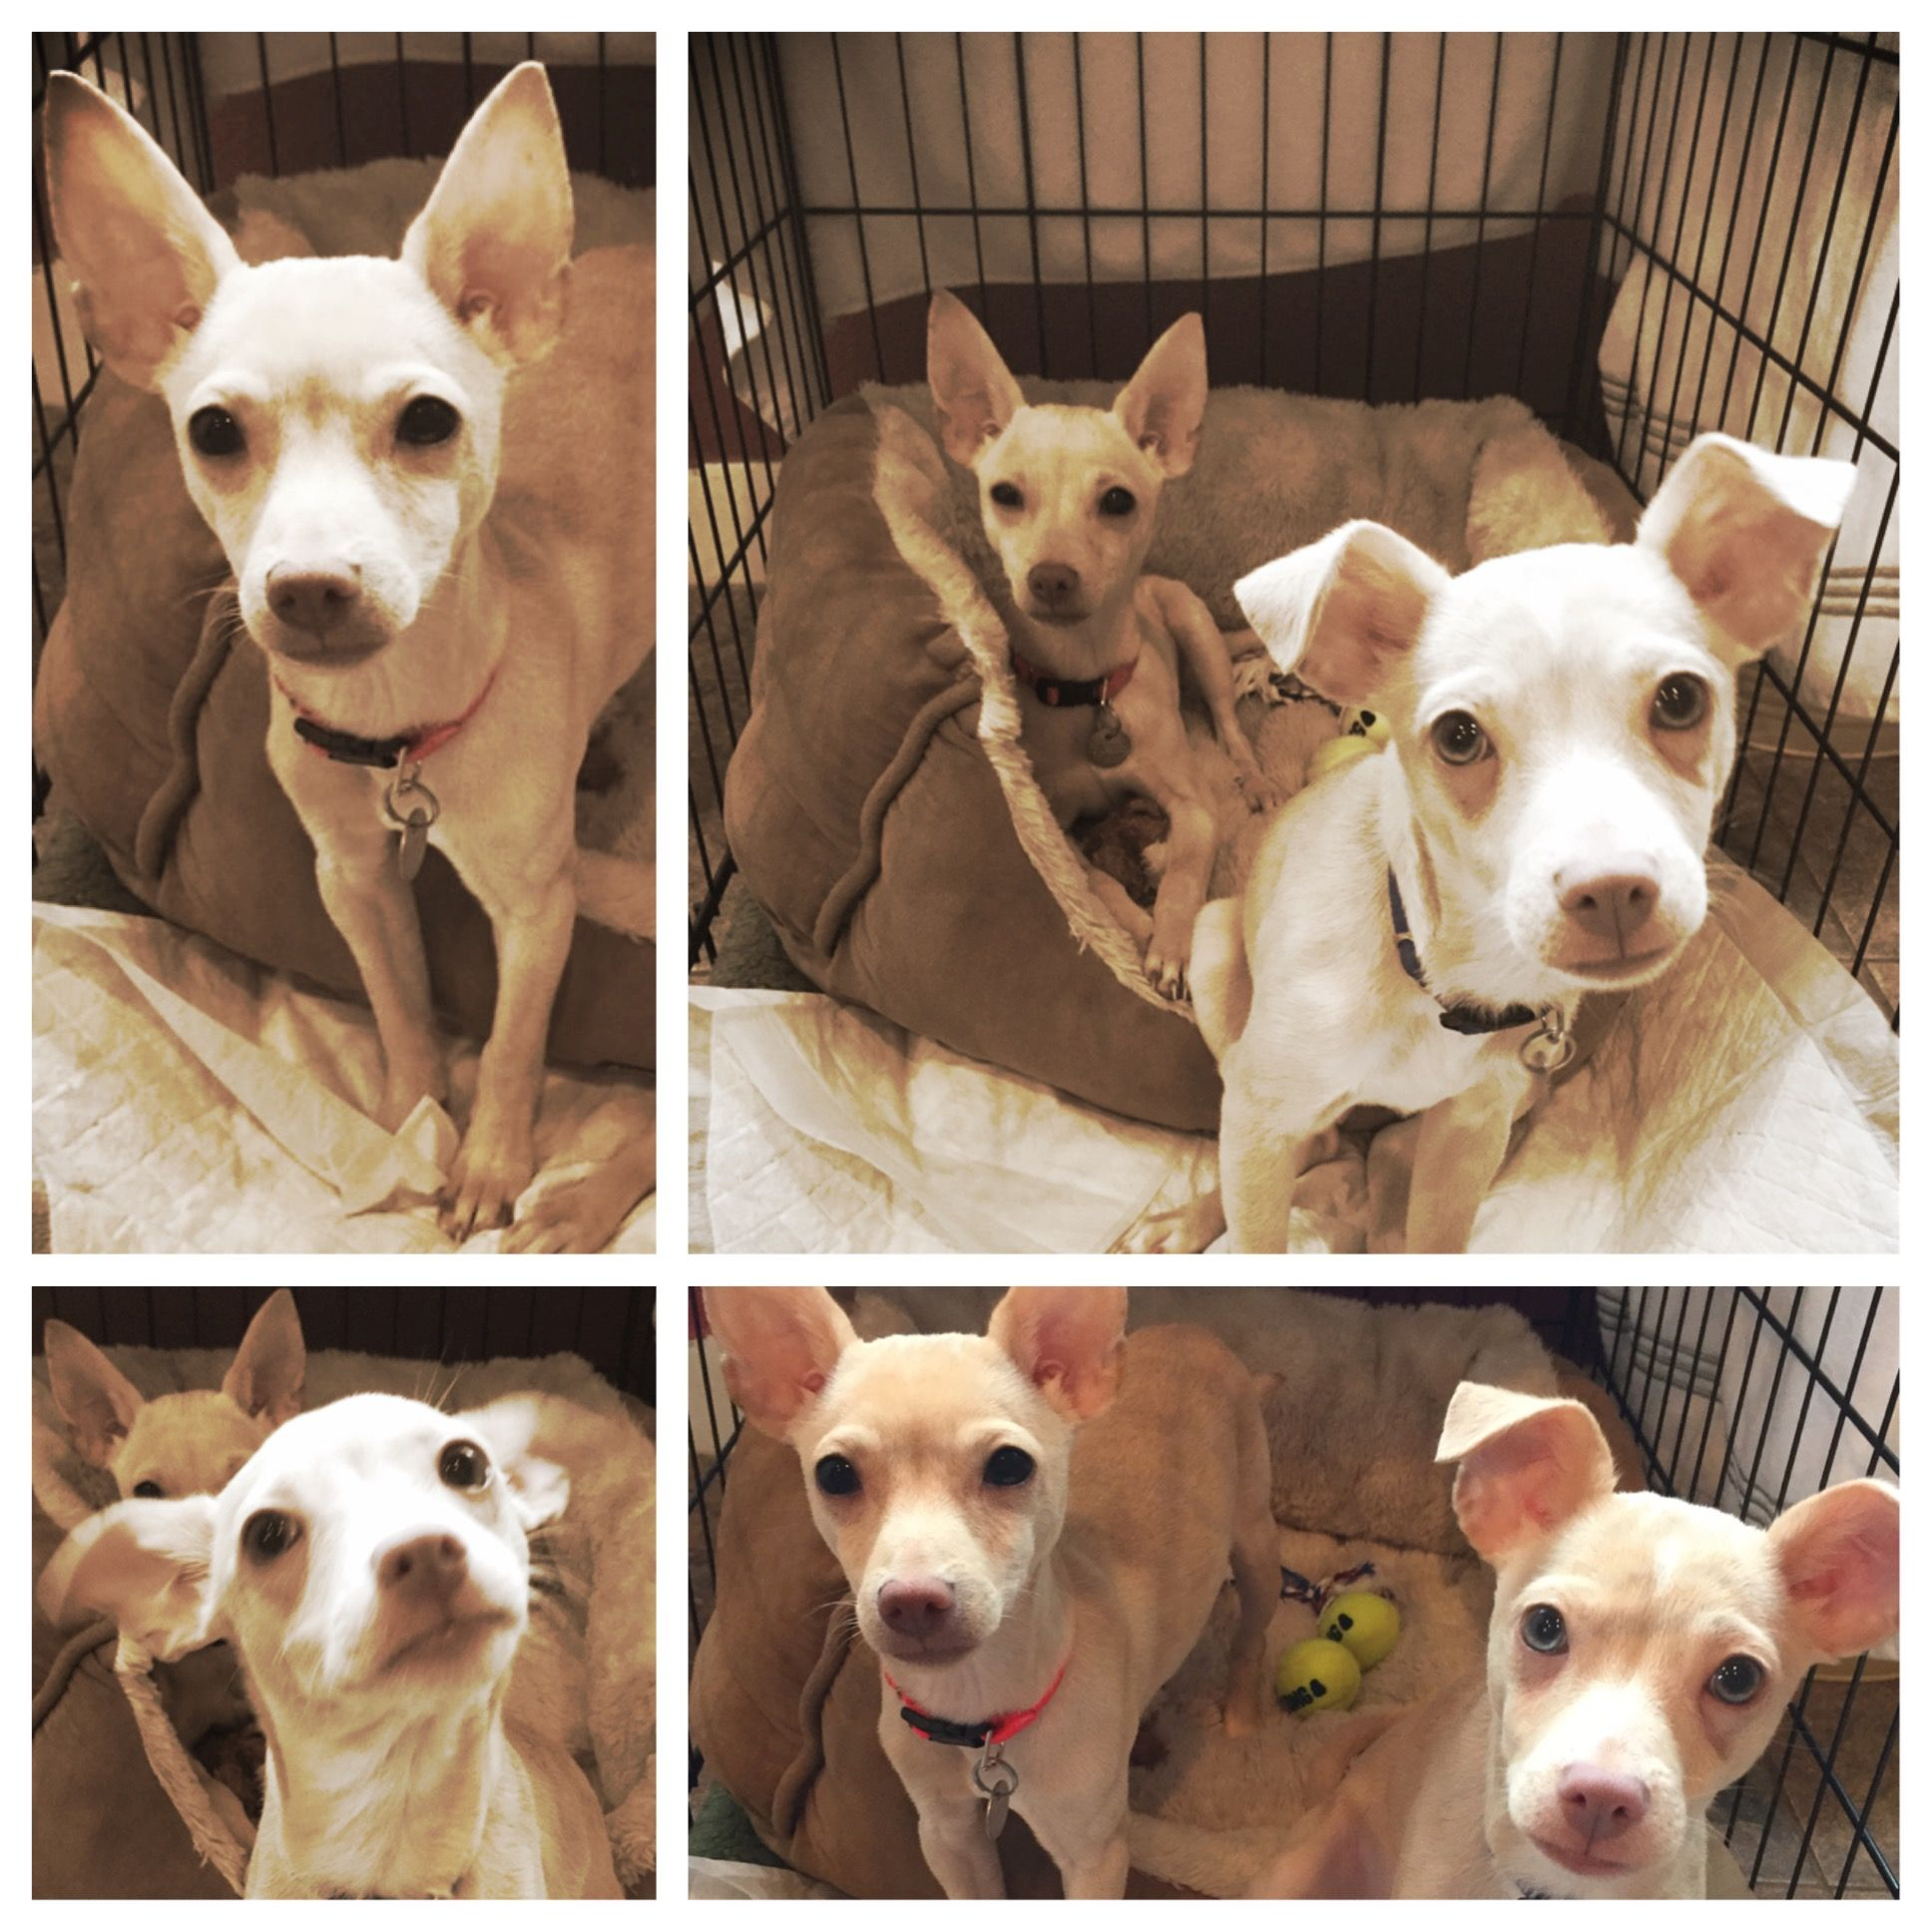 **Adopted** Paulie and Davie Chihuahua puppies found in